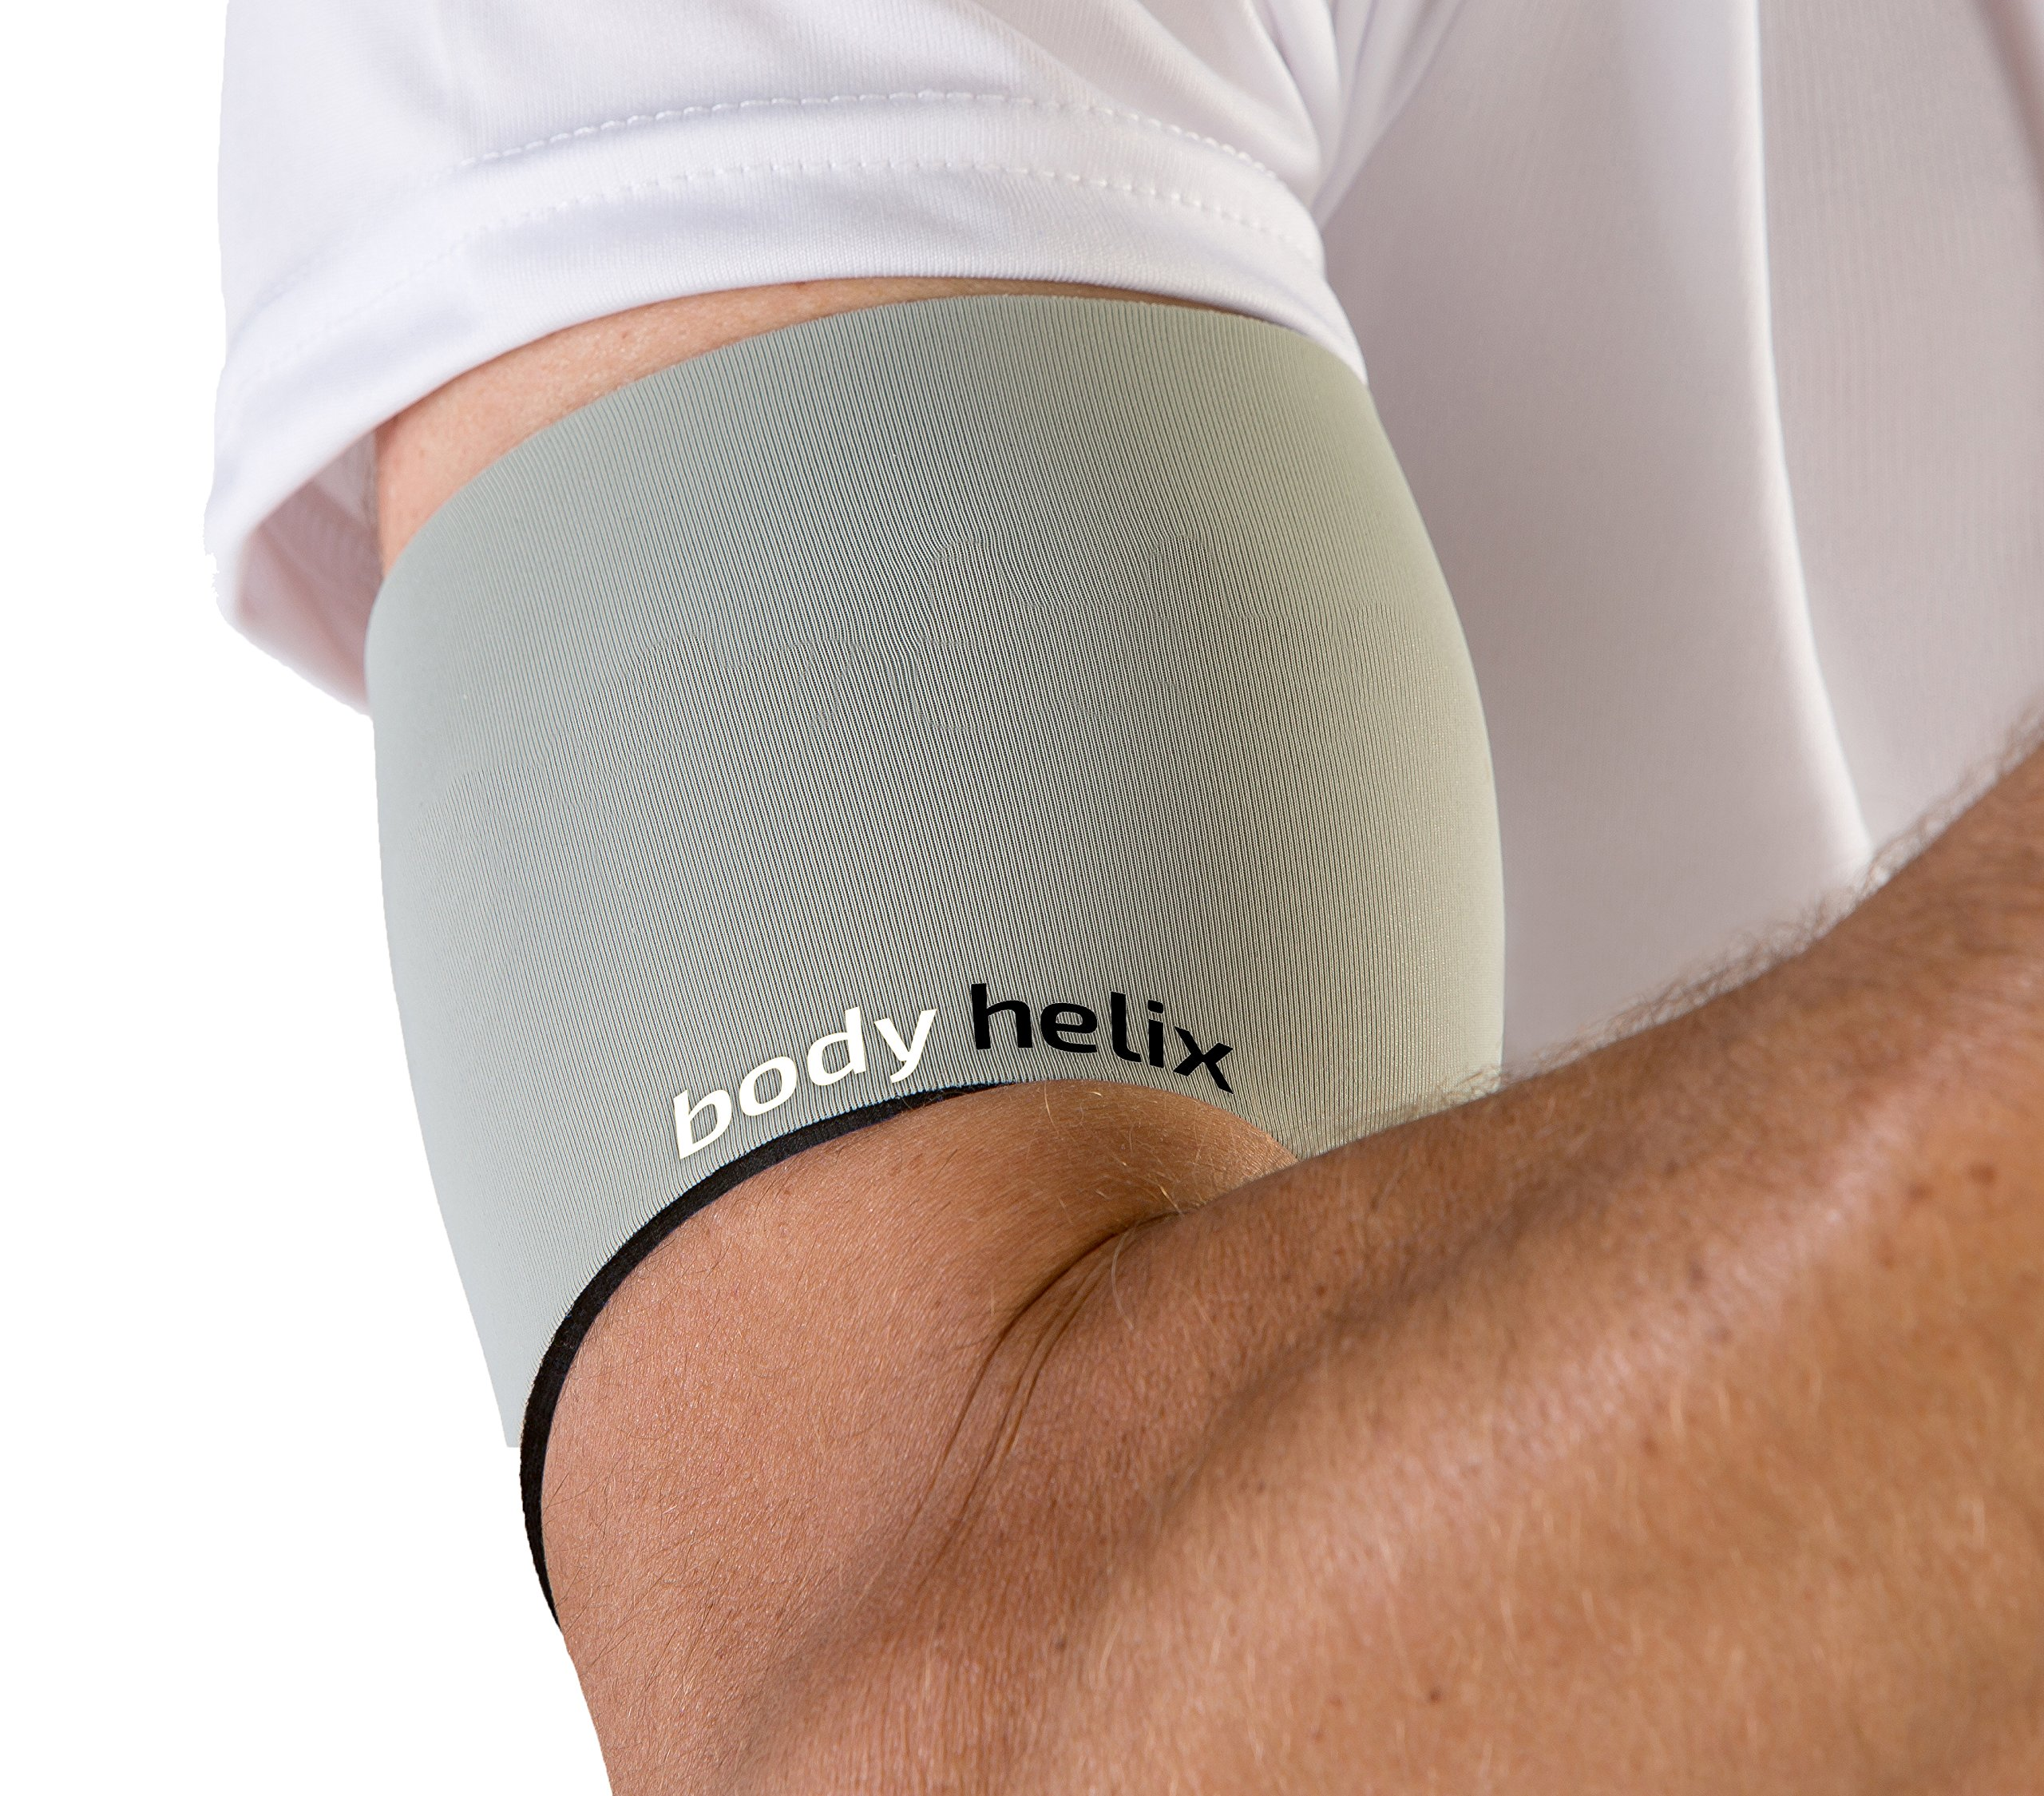 body helix Arm Compression Sleeve Wrap - Pain Relief for Bicep and Tricep Muscle Strains (Silver, Large)